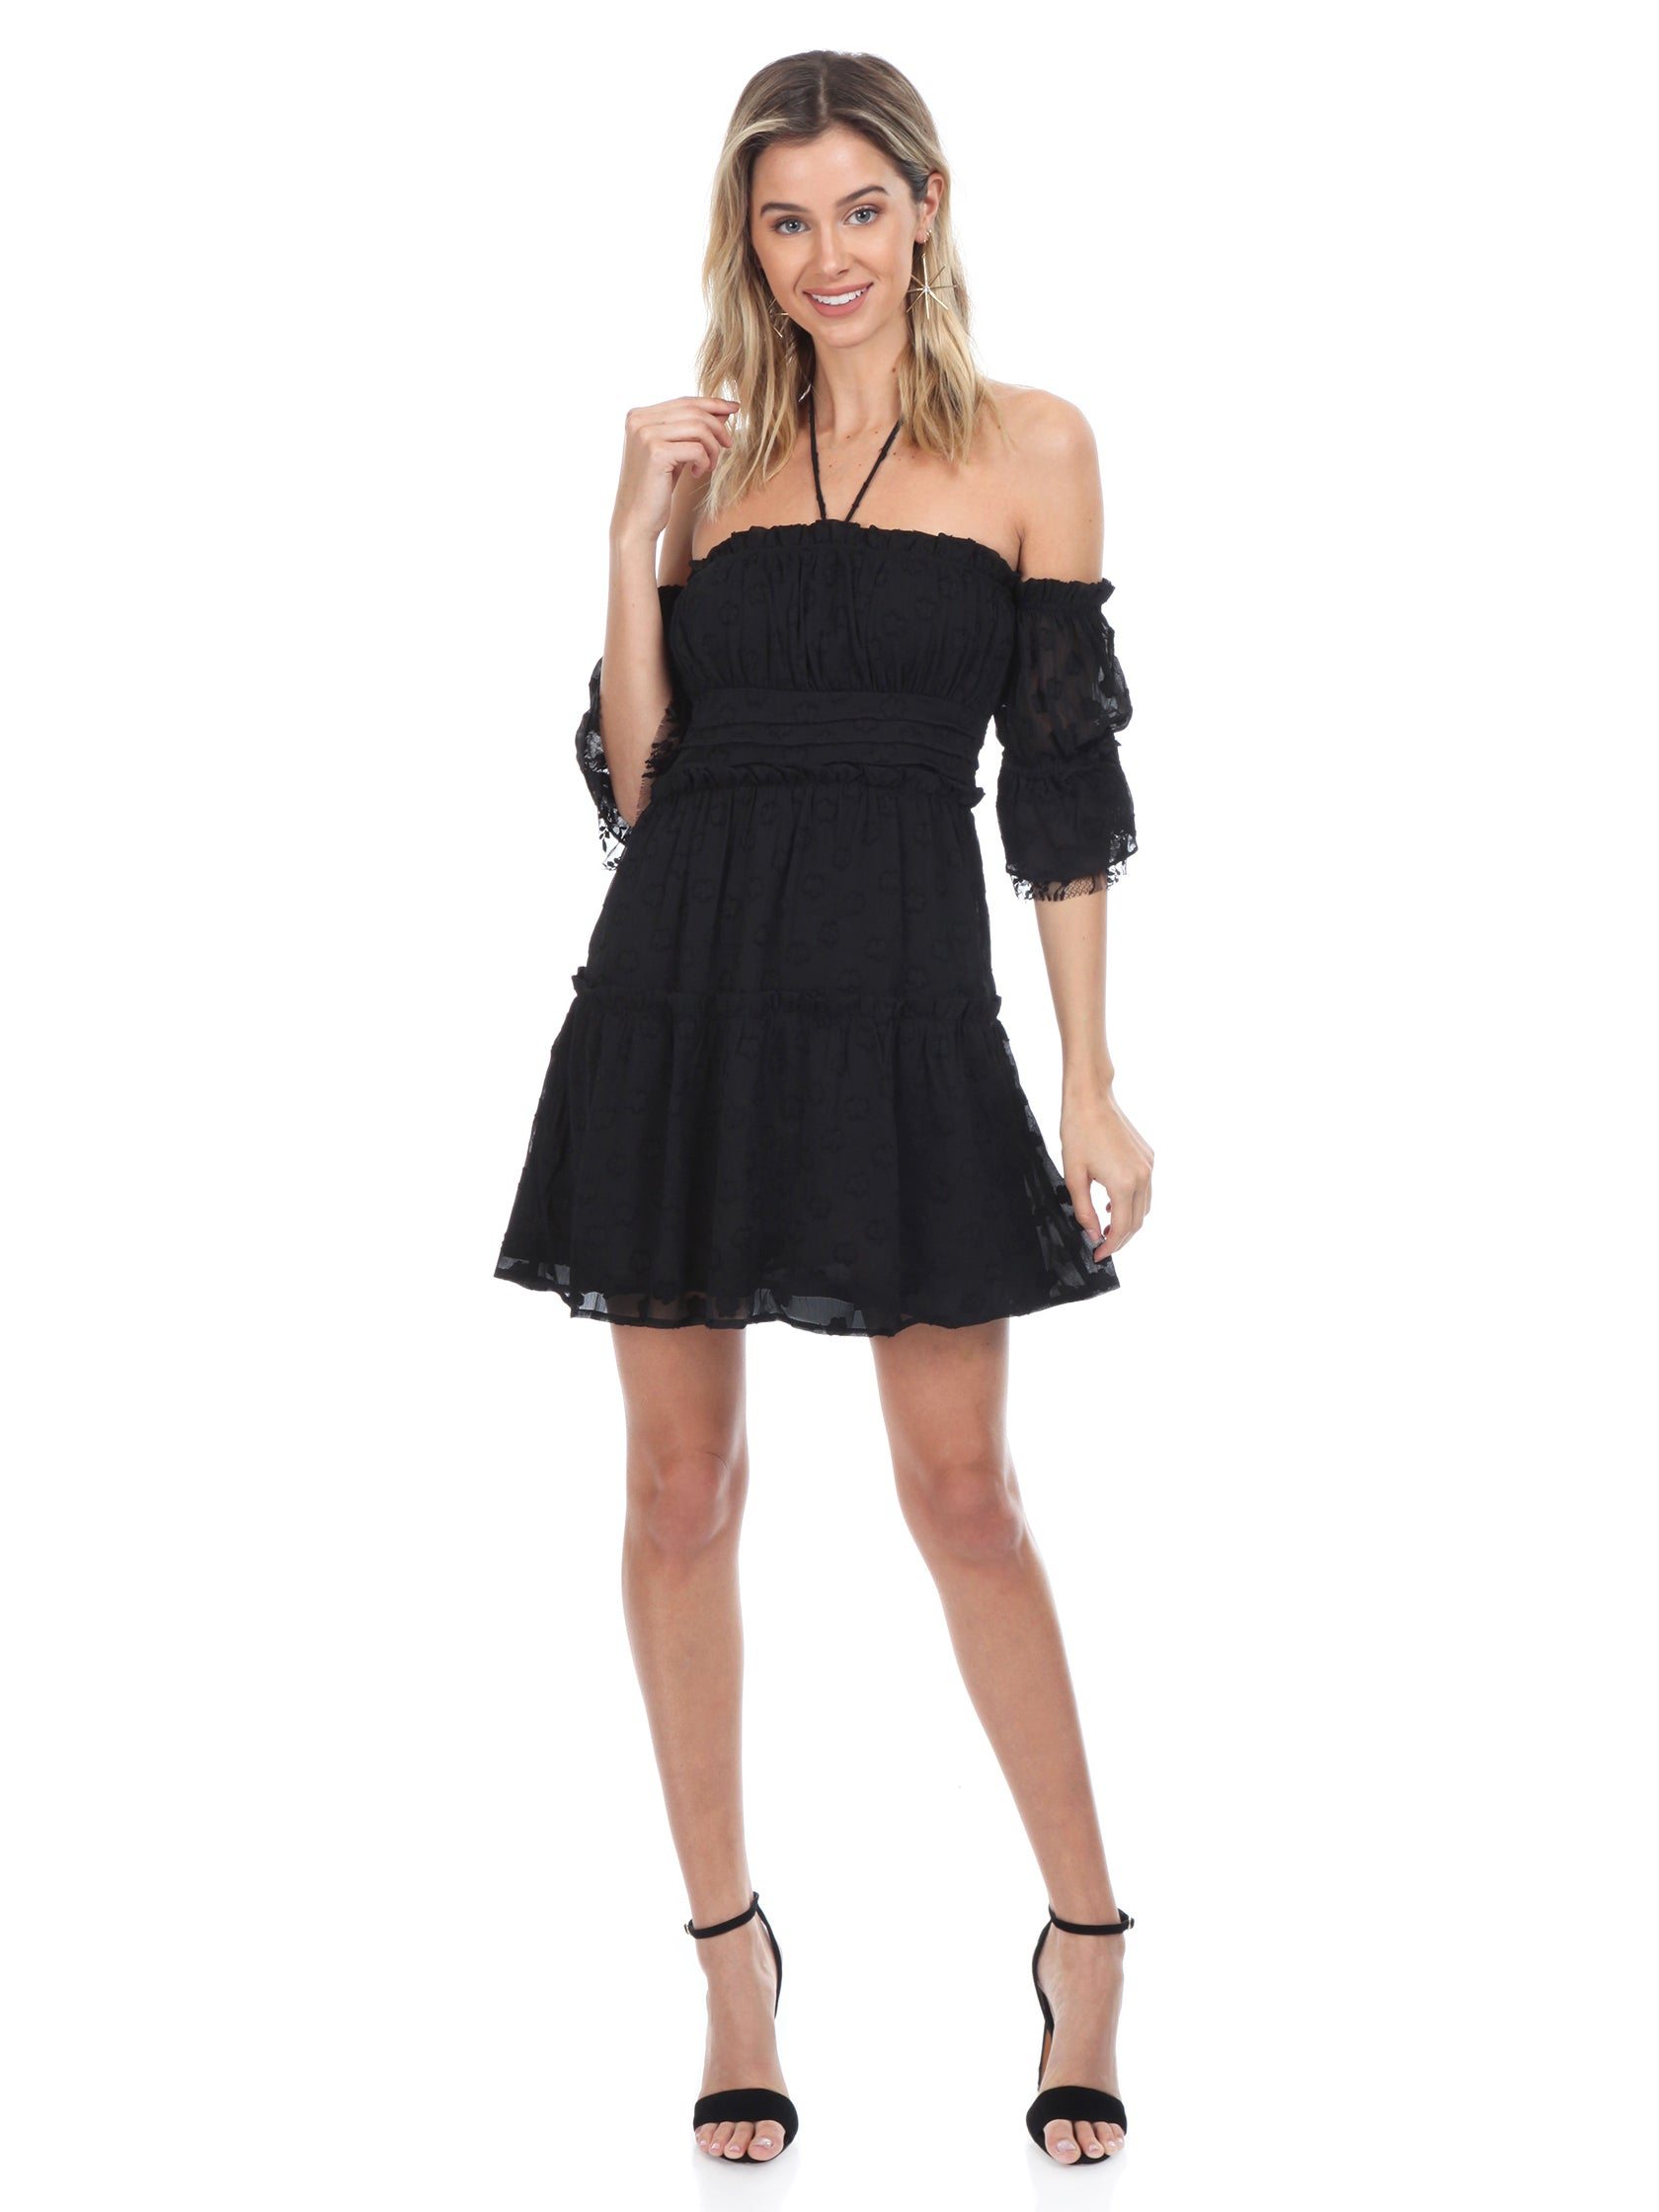 Girl outfit in a dress rental from FashionPass called Jordan Ruffle Mini Dress